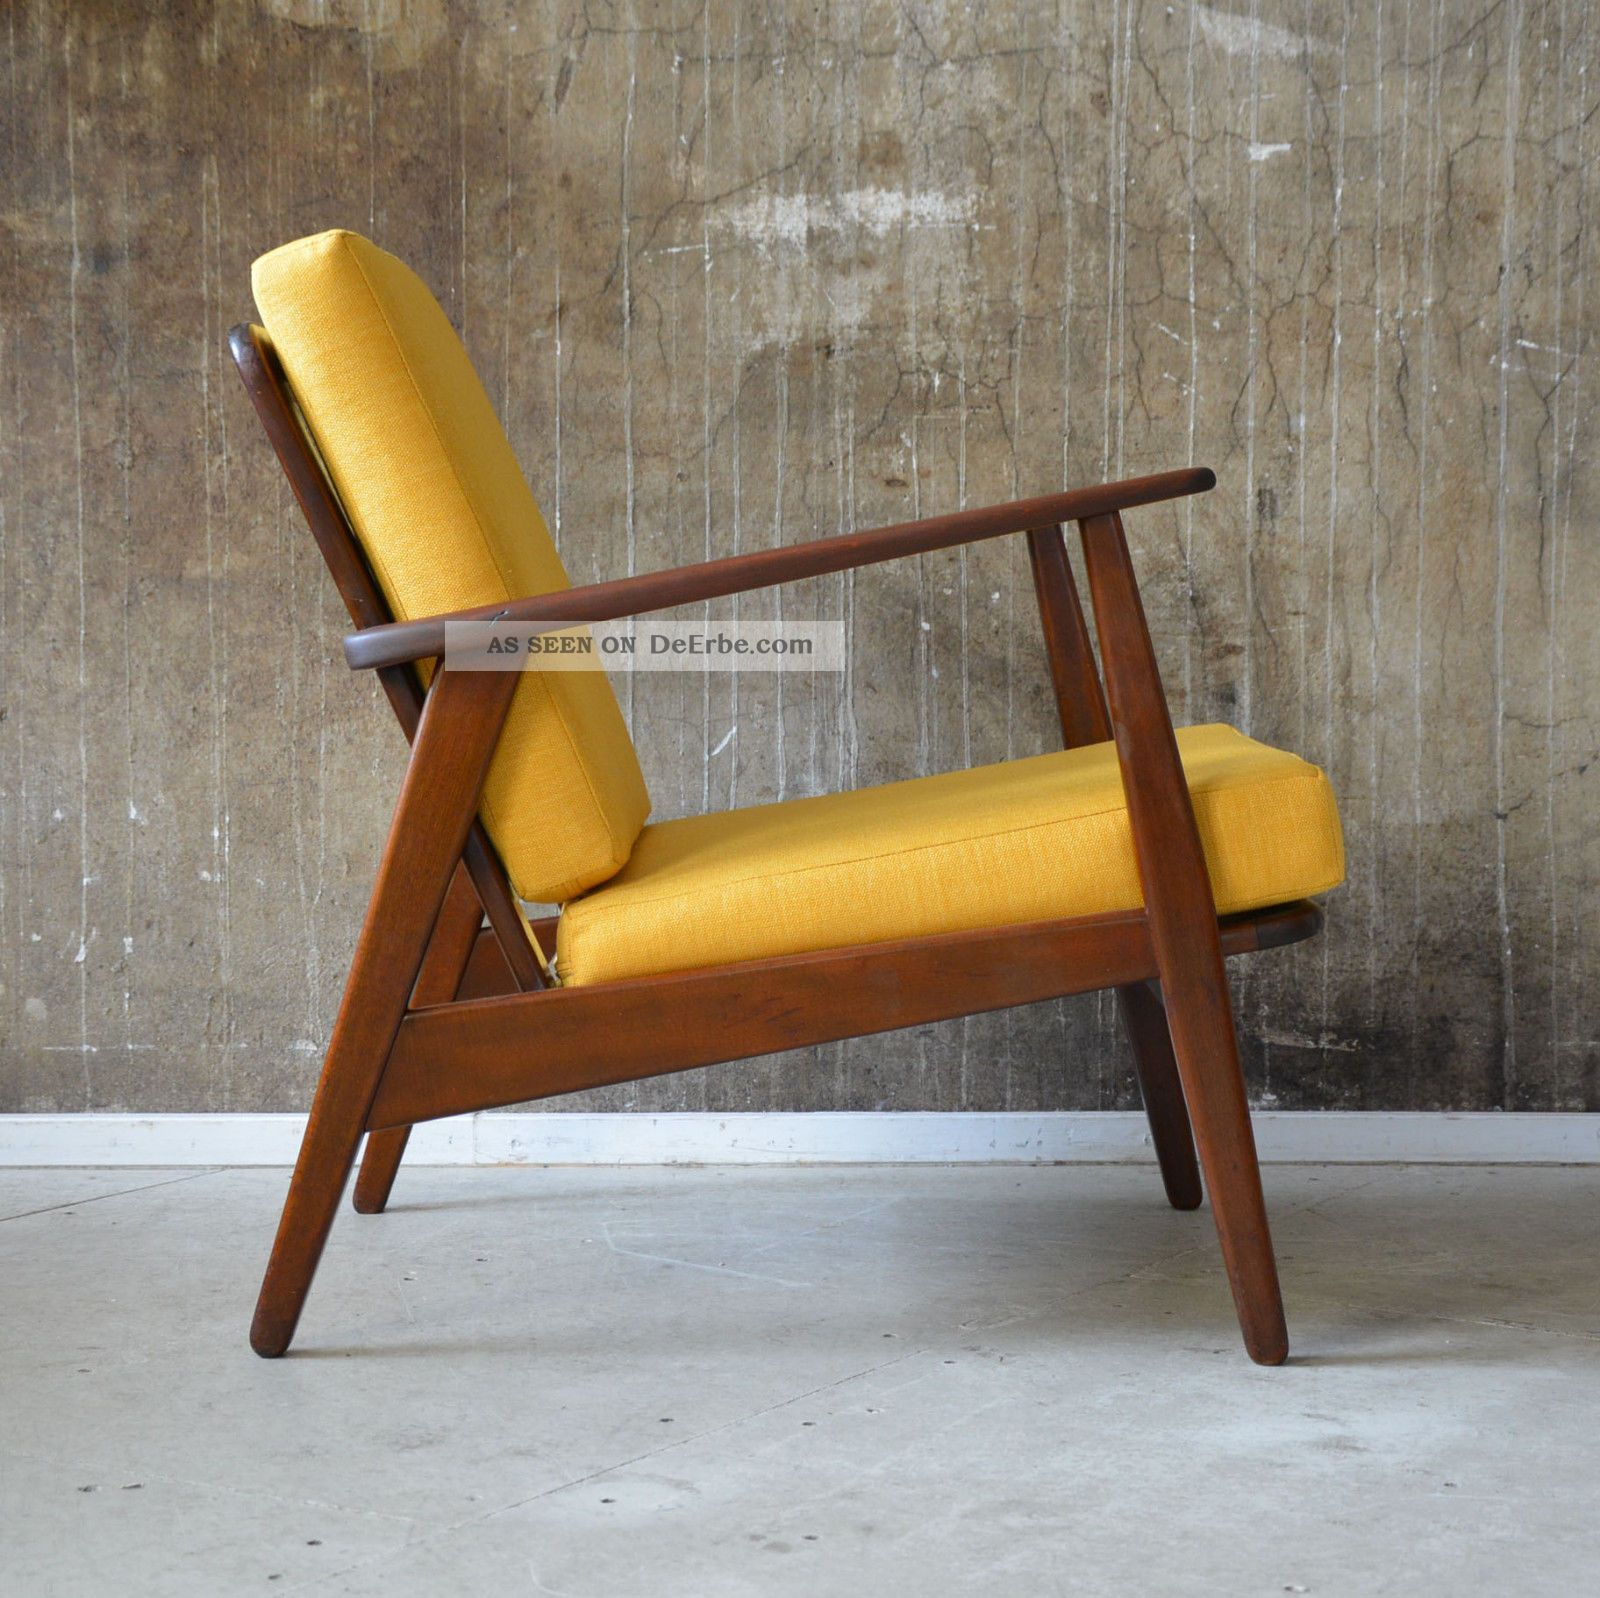 60er teak sessel danish design 60s easy chair vintage for Vintage sessel berlin